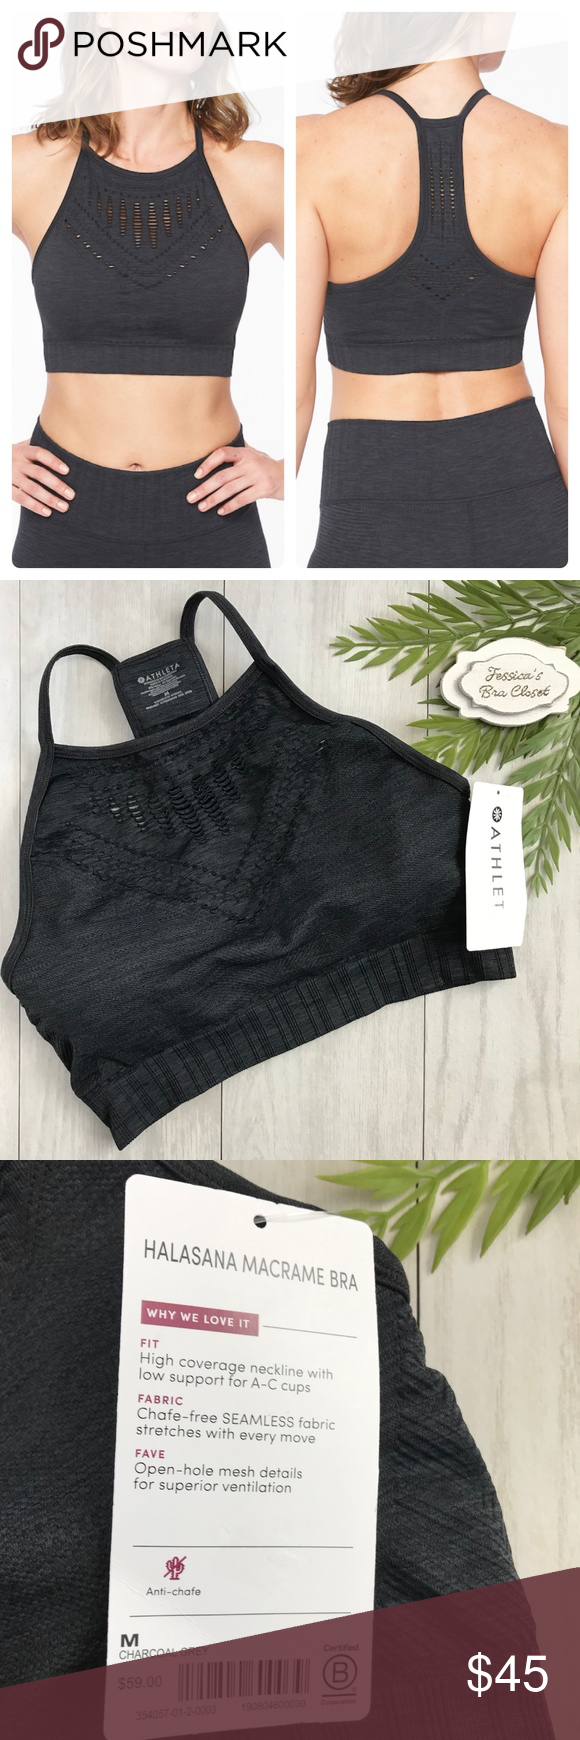 0ffa23c44b7c7 ATHLETA⭐️Halasana Macrame Sports Bra NWT Grey Brand new with tags! NWT  Athleta Halasana